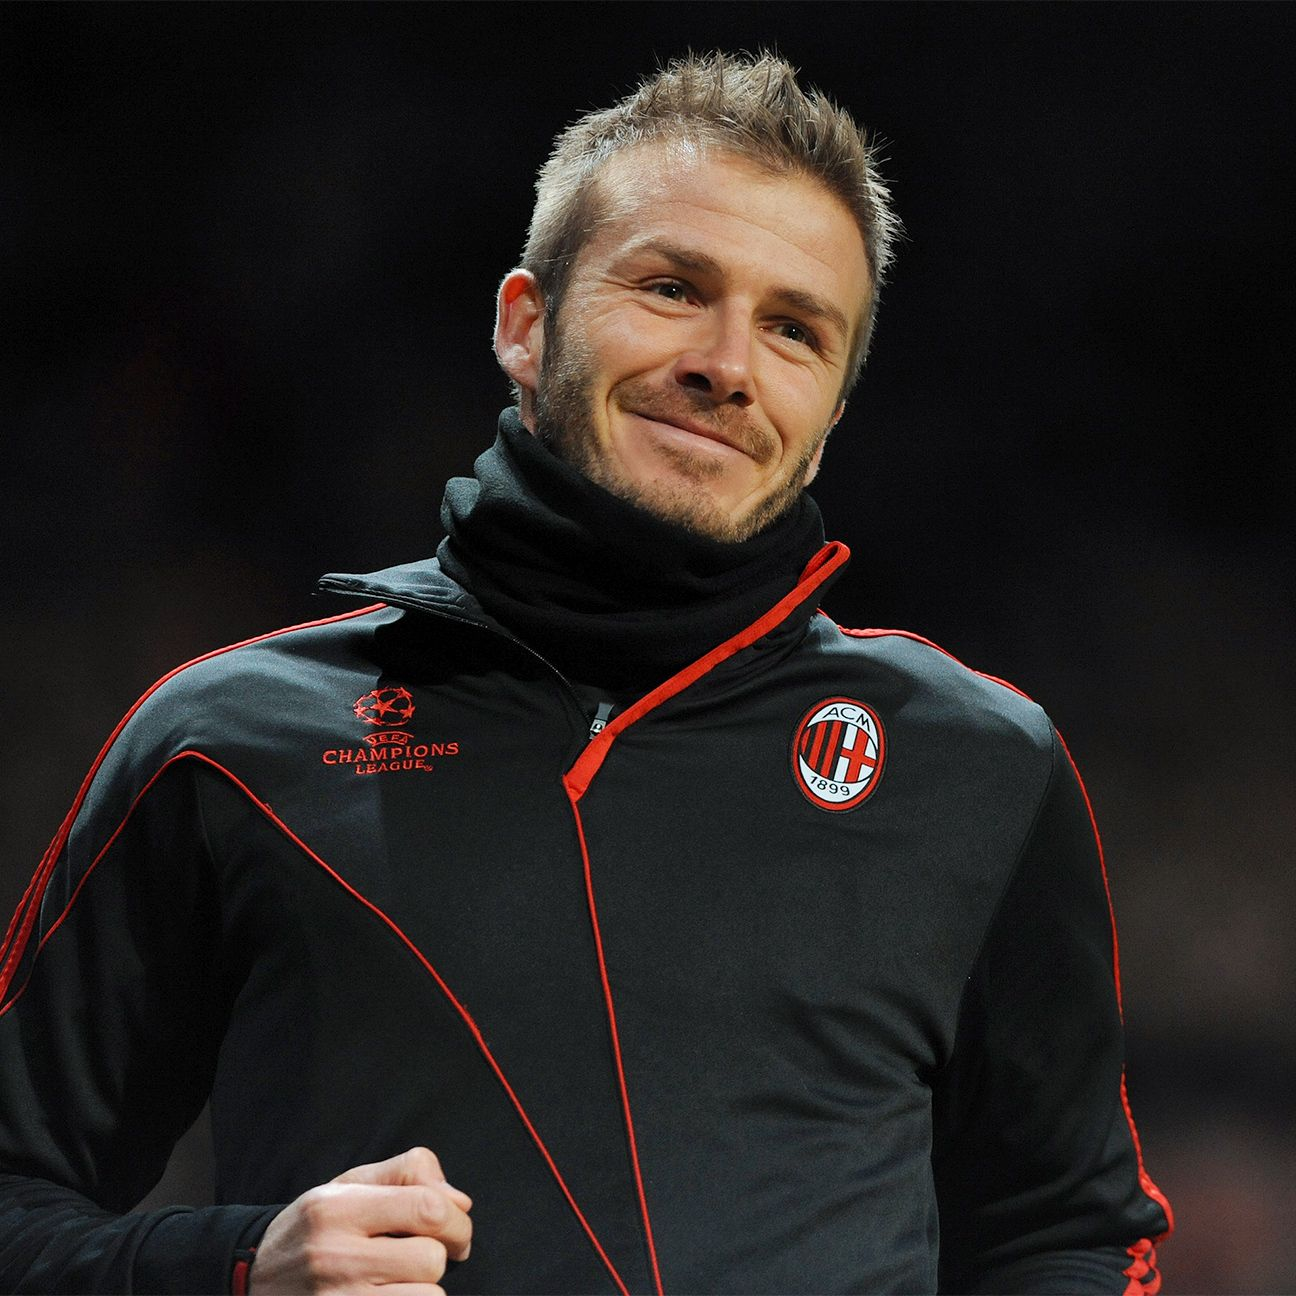 David Beckham has a feeling Milan can still win the Champions League, even though they're not in it.